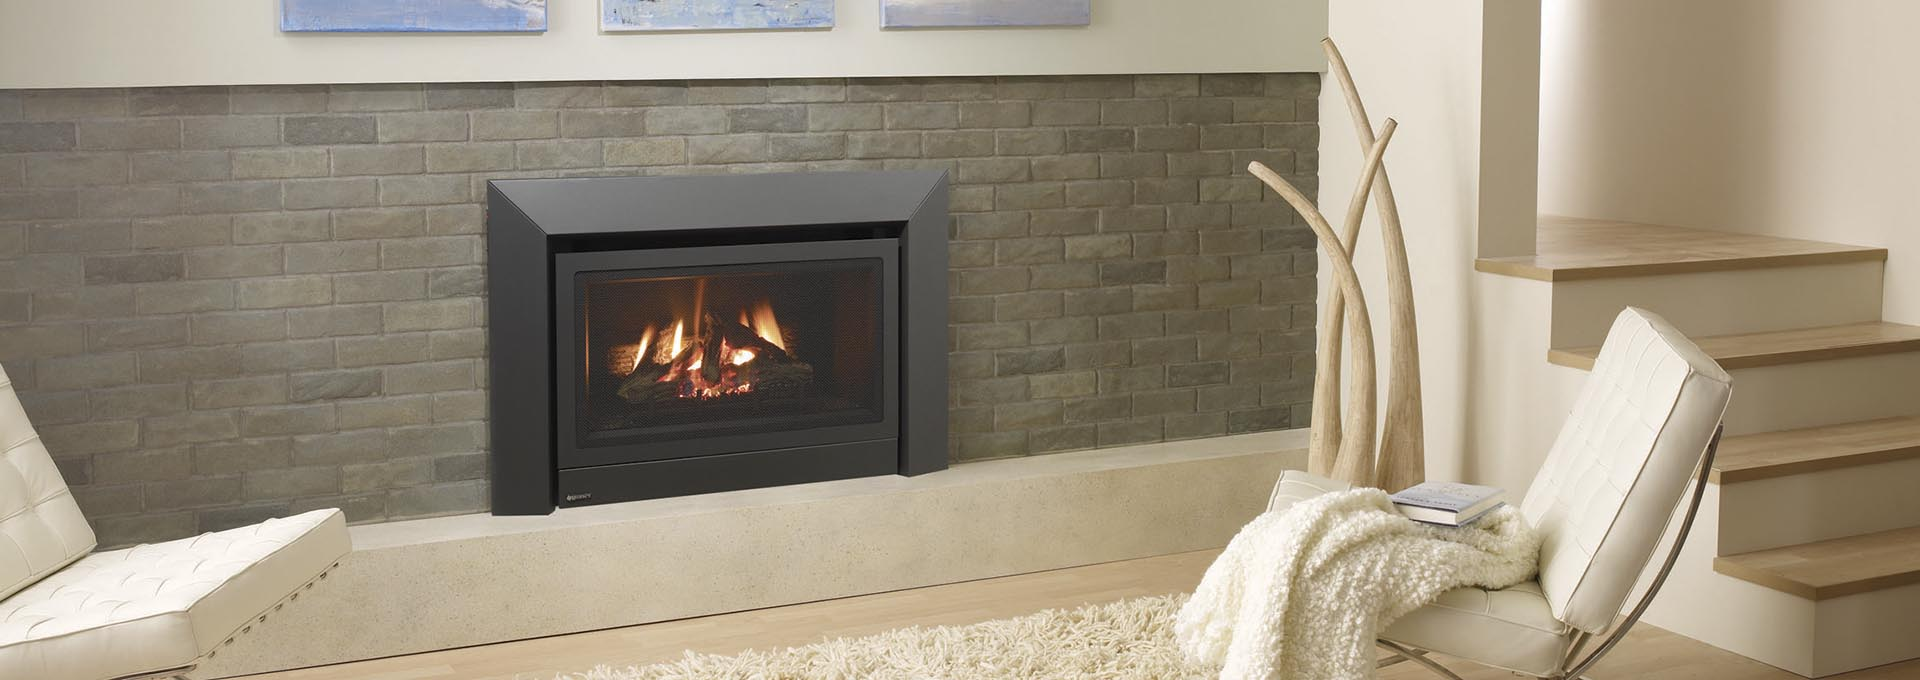 inserts regency fireplace accent with products shown en nickel black b door wood